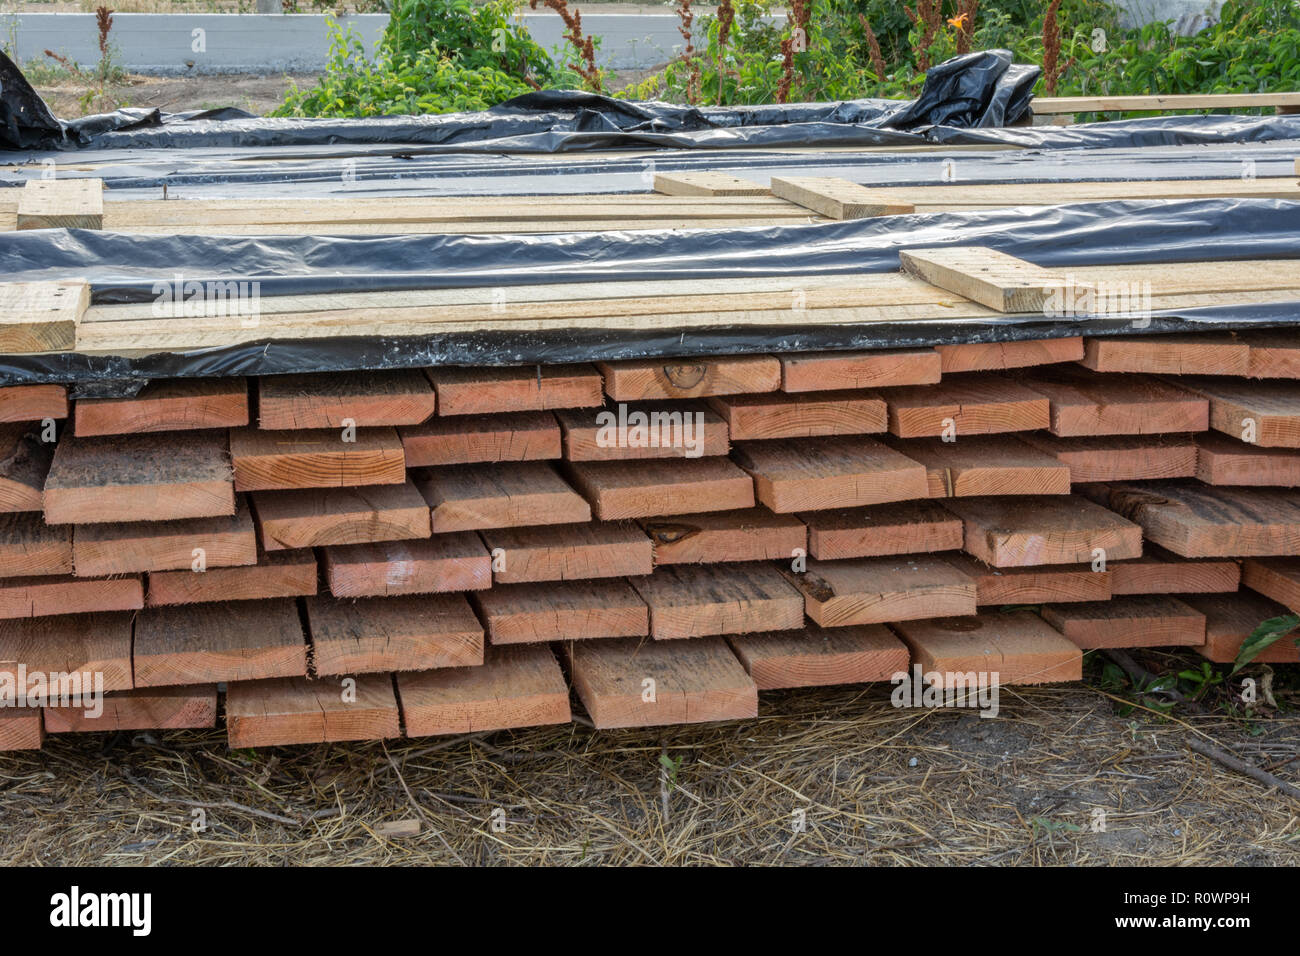 A stack of pine boards soaked in an antiseptic solution is dried at the construction site. Building materials for the construction of a frame house. - Stock Image